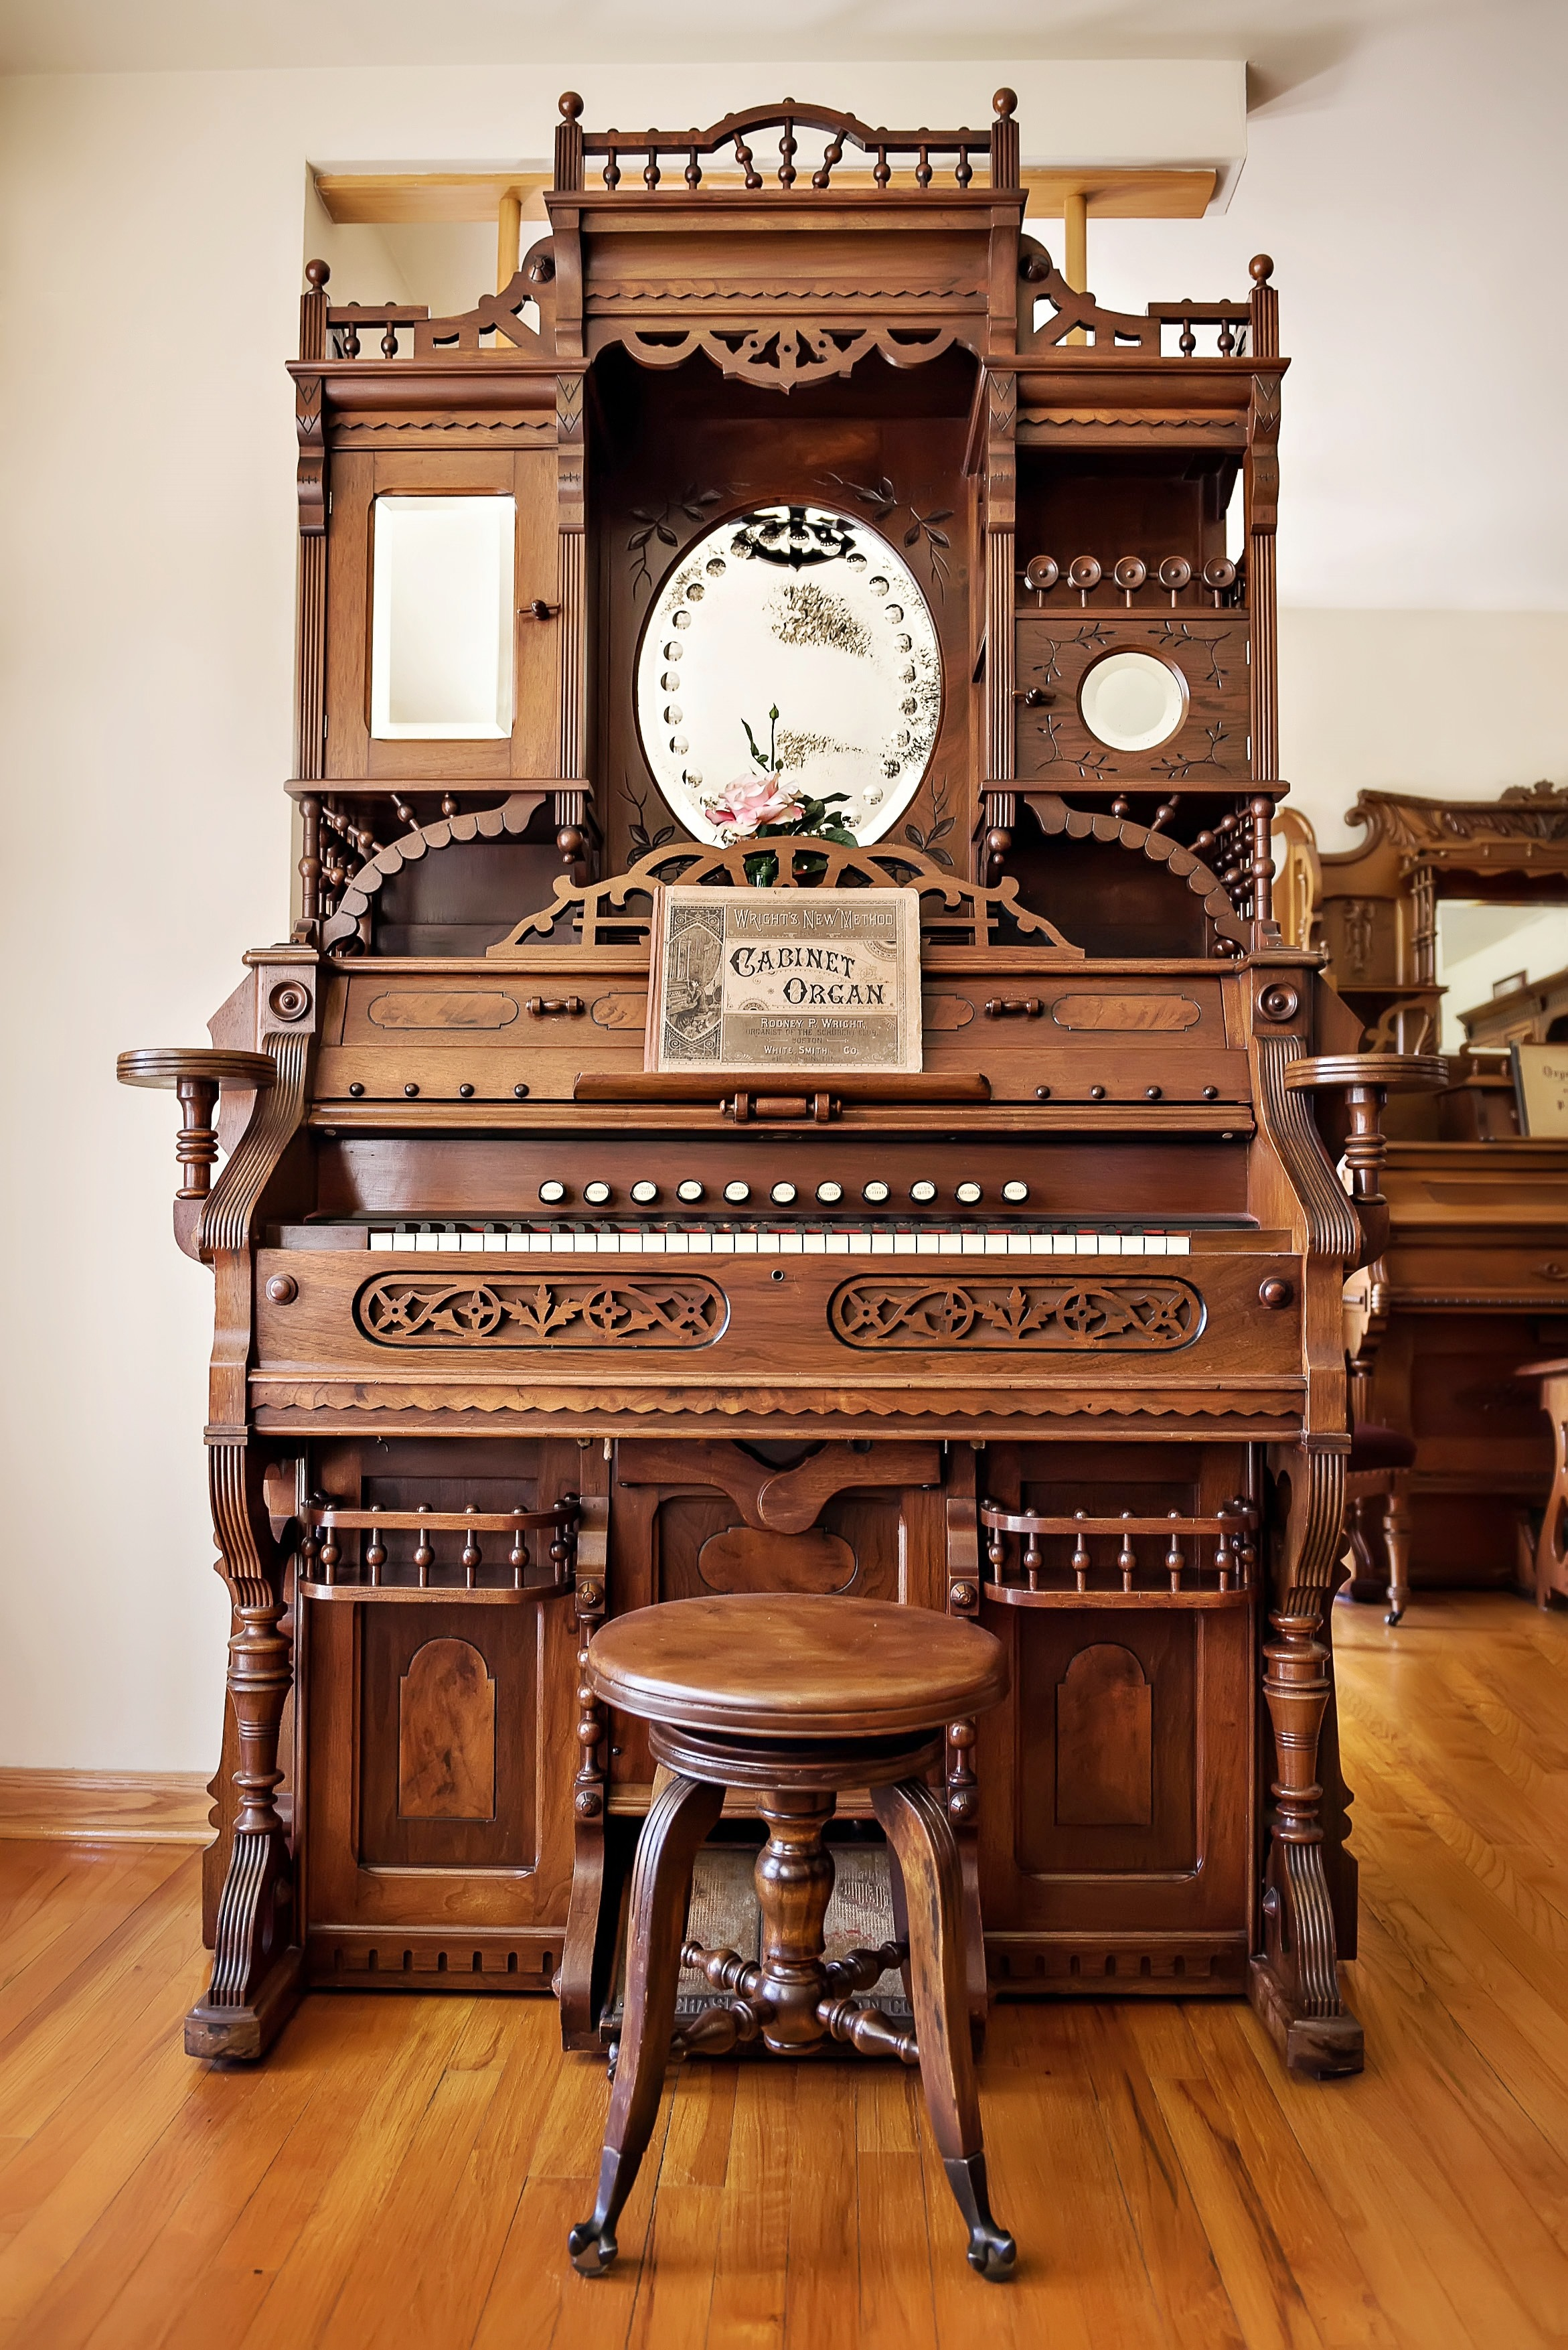 Parlor Organ for sale built by the A.B. Chase Company of Norwalk, Ohio.